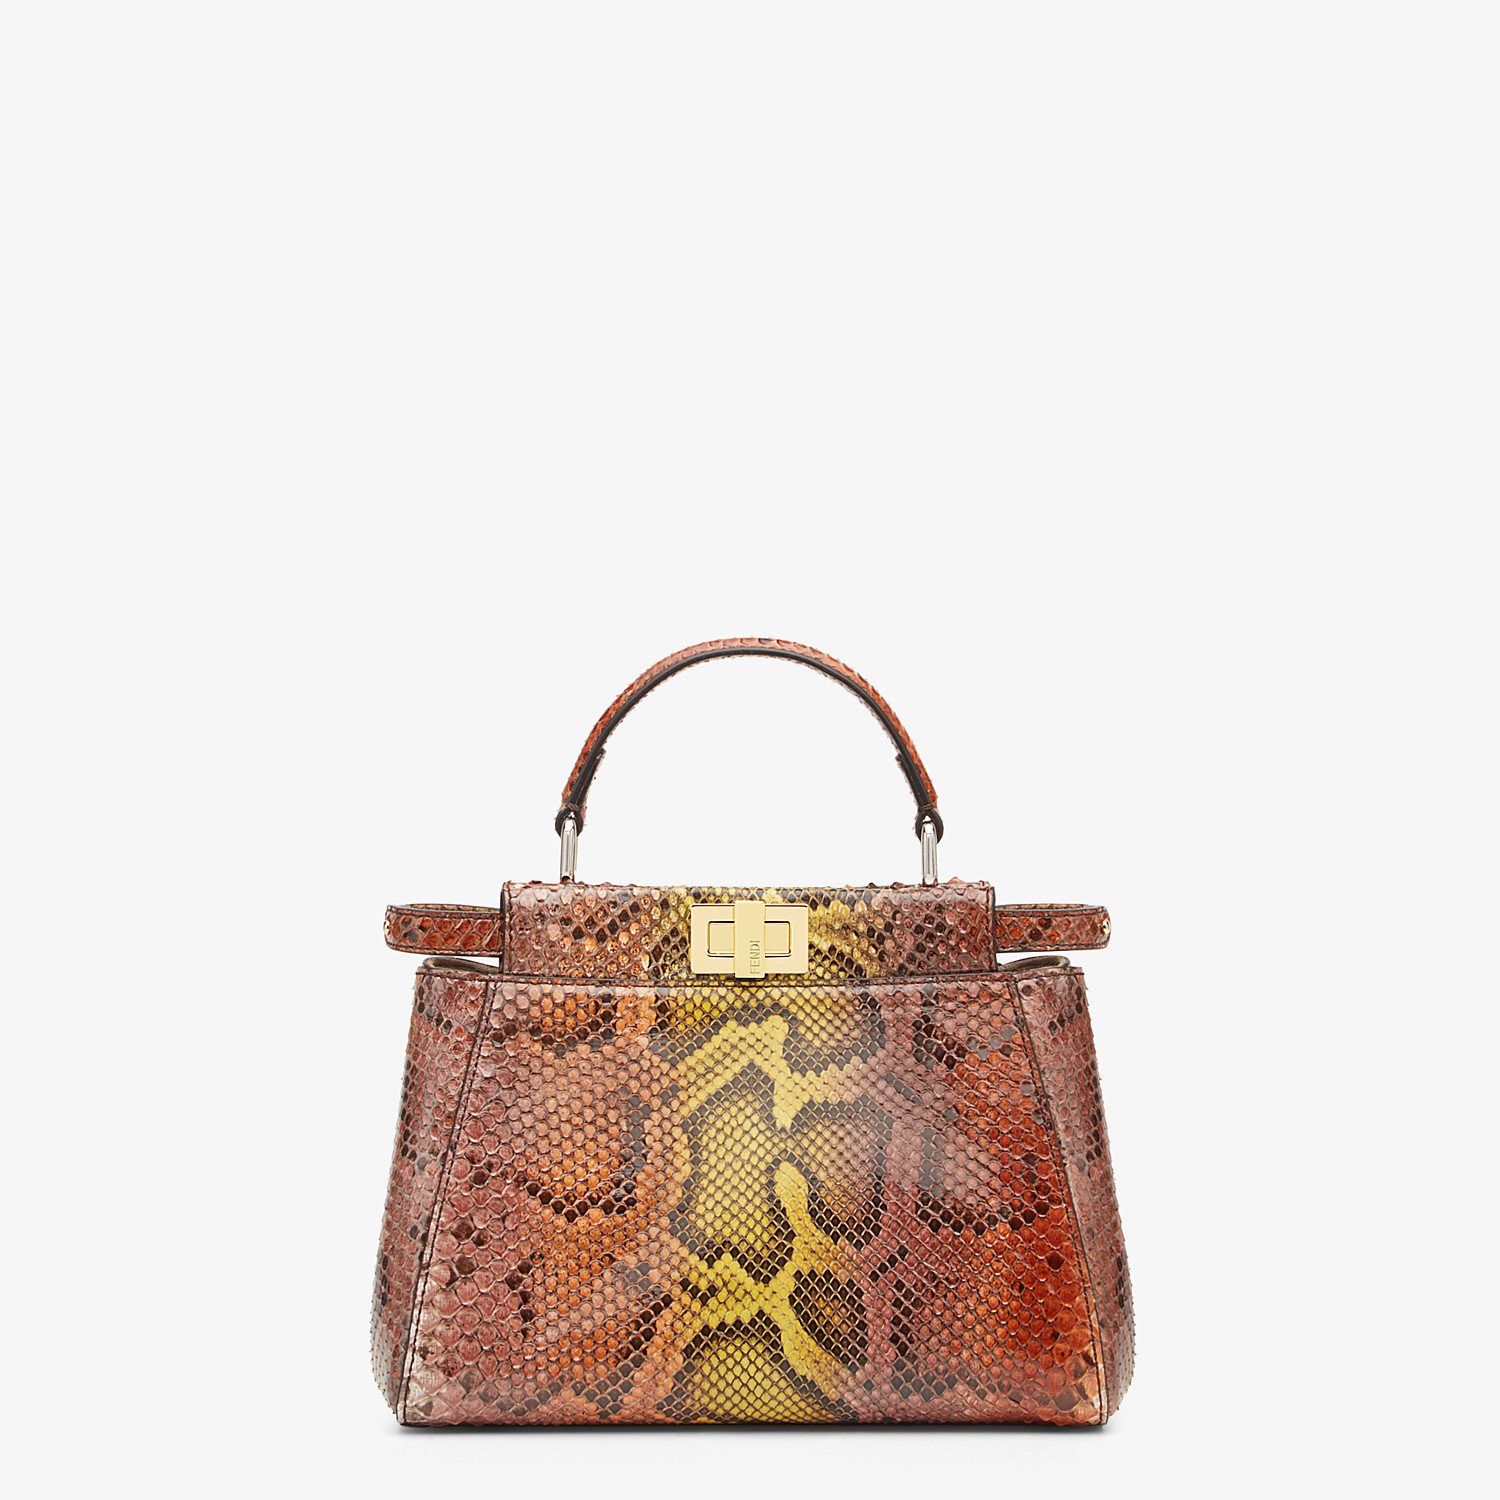 FENDI PEEKABOO ICONIC MINI - Borsa in pitone marrone - vista 1 dettaglio